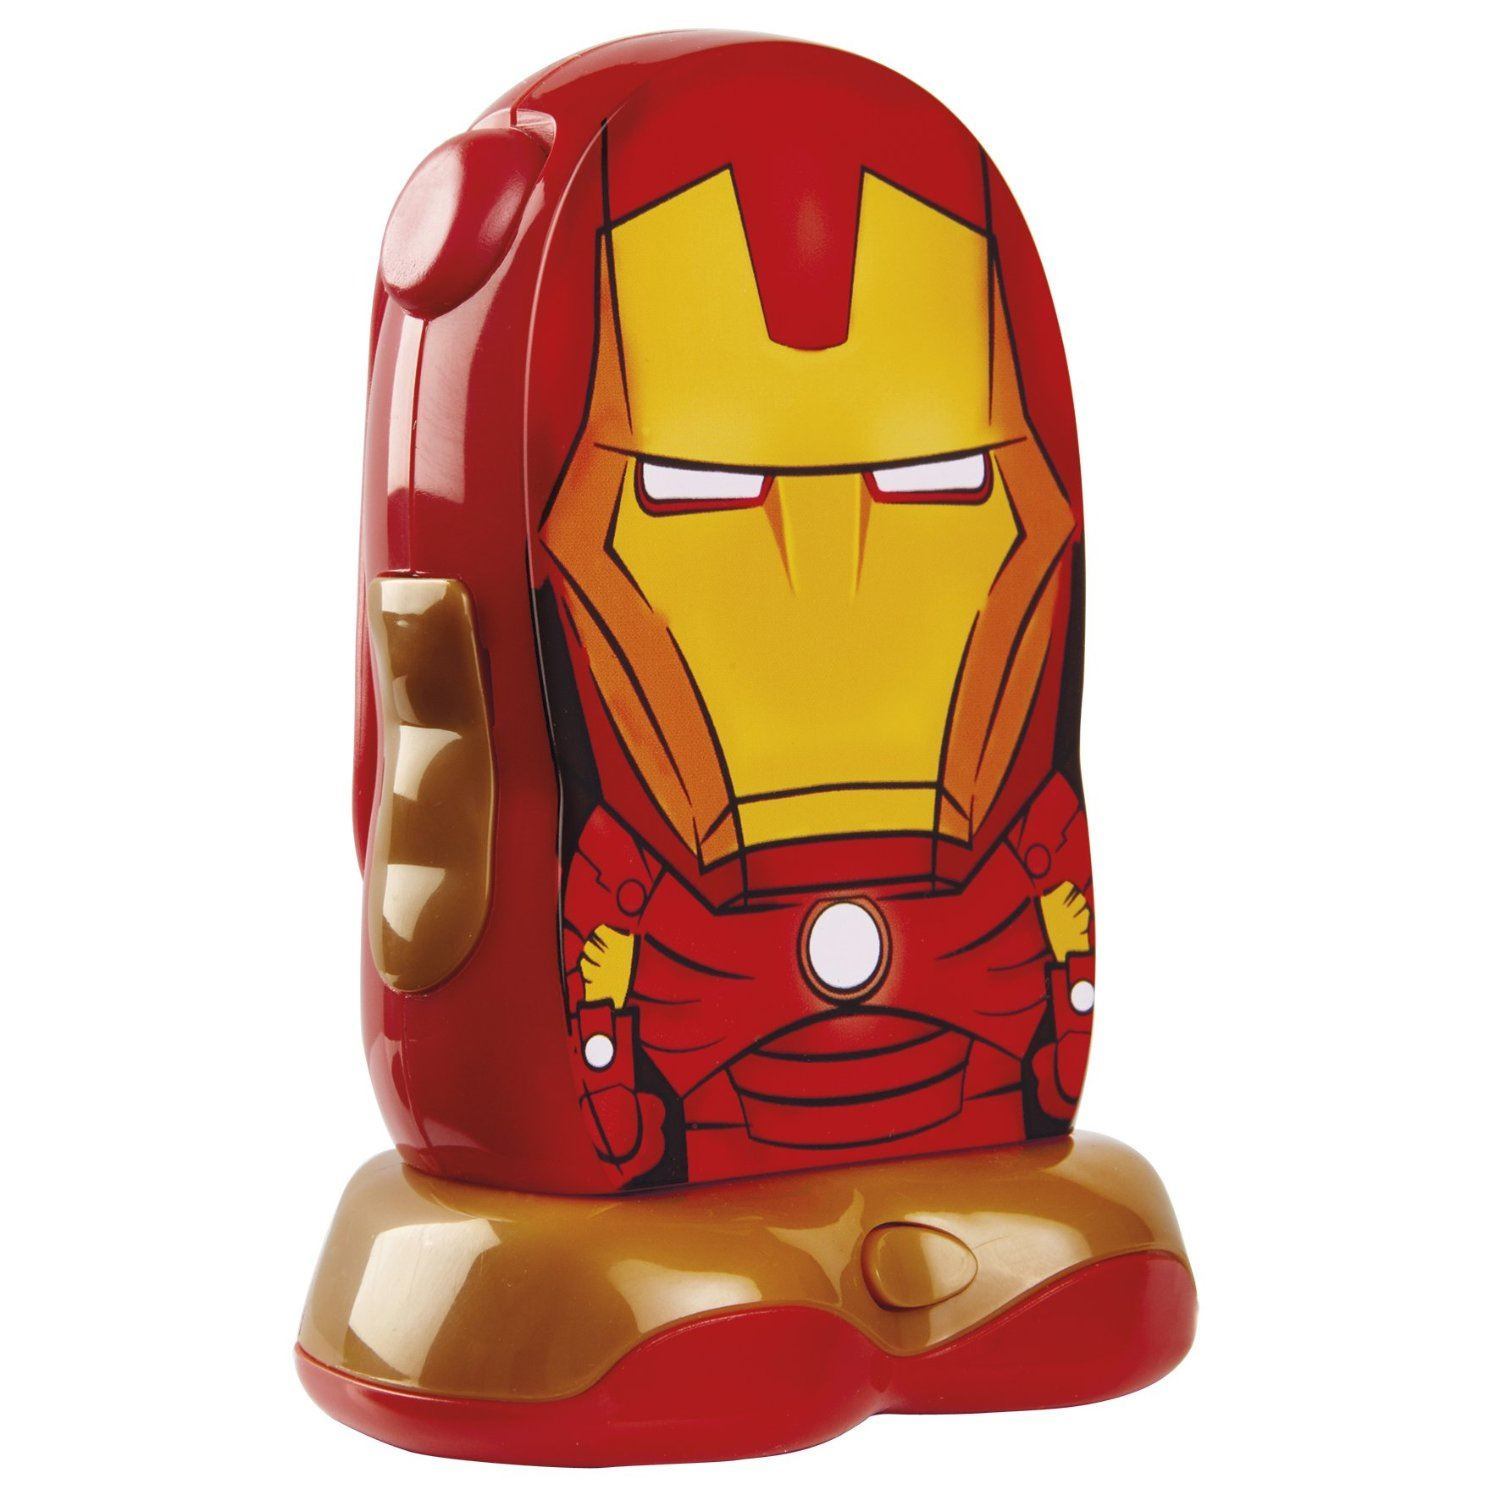 Cartoon Characters Voice Changer : Go glow hero room guard voice changer and torch new